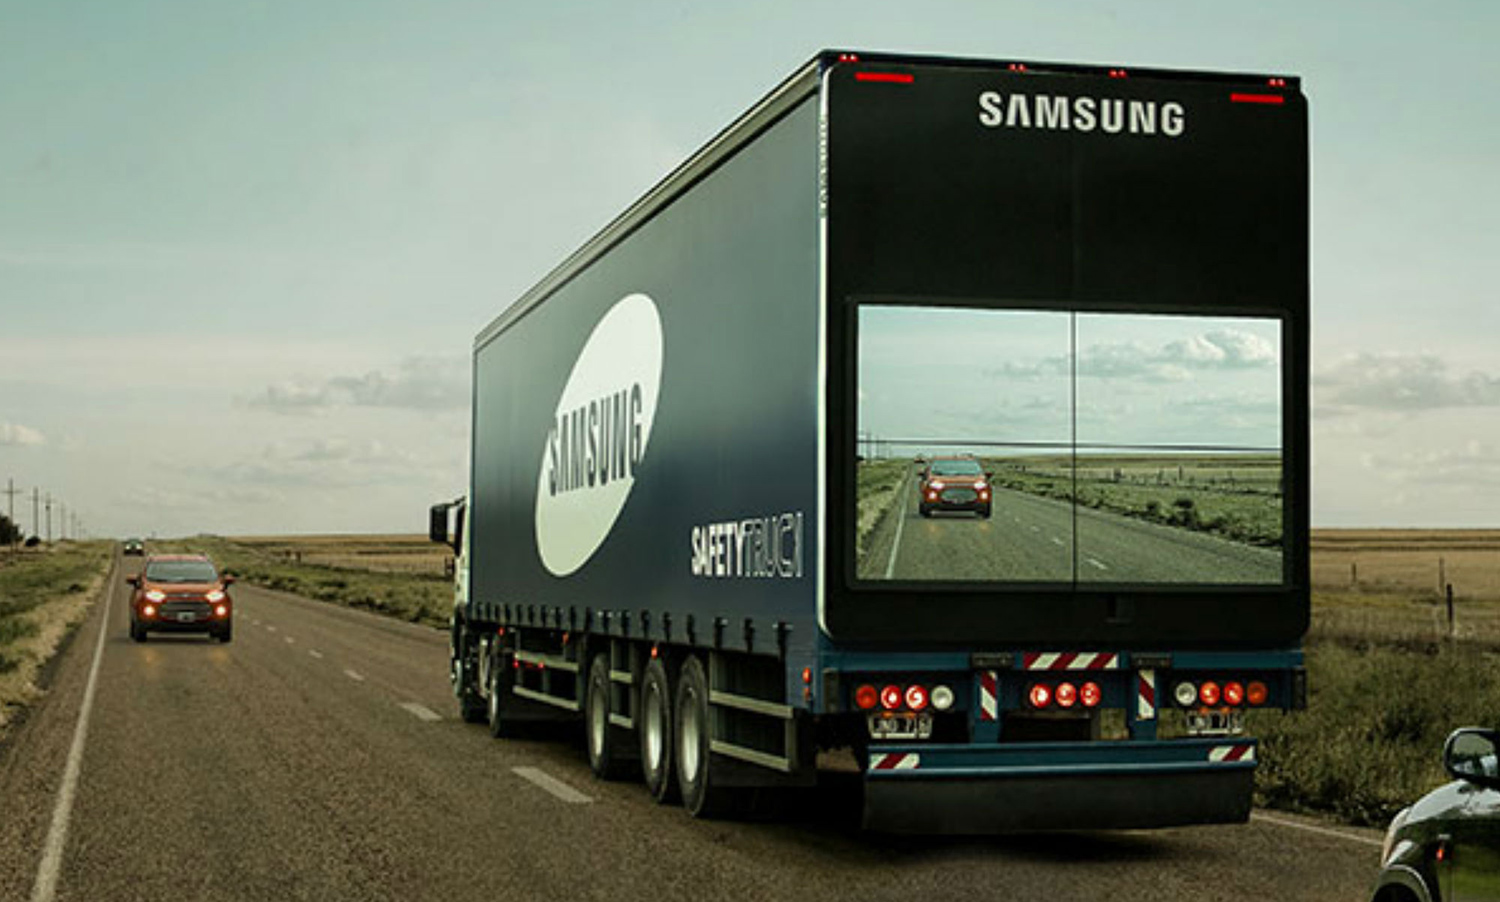 Samsung-Safety-Truck-02